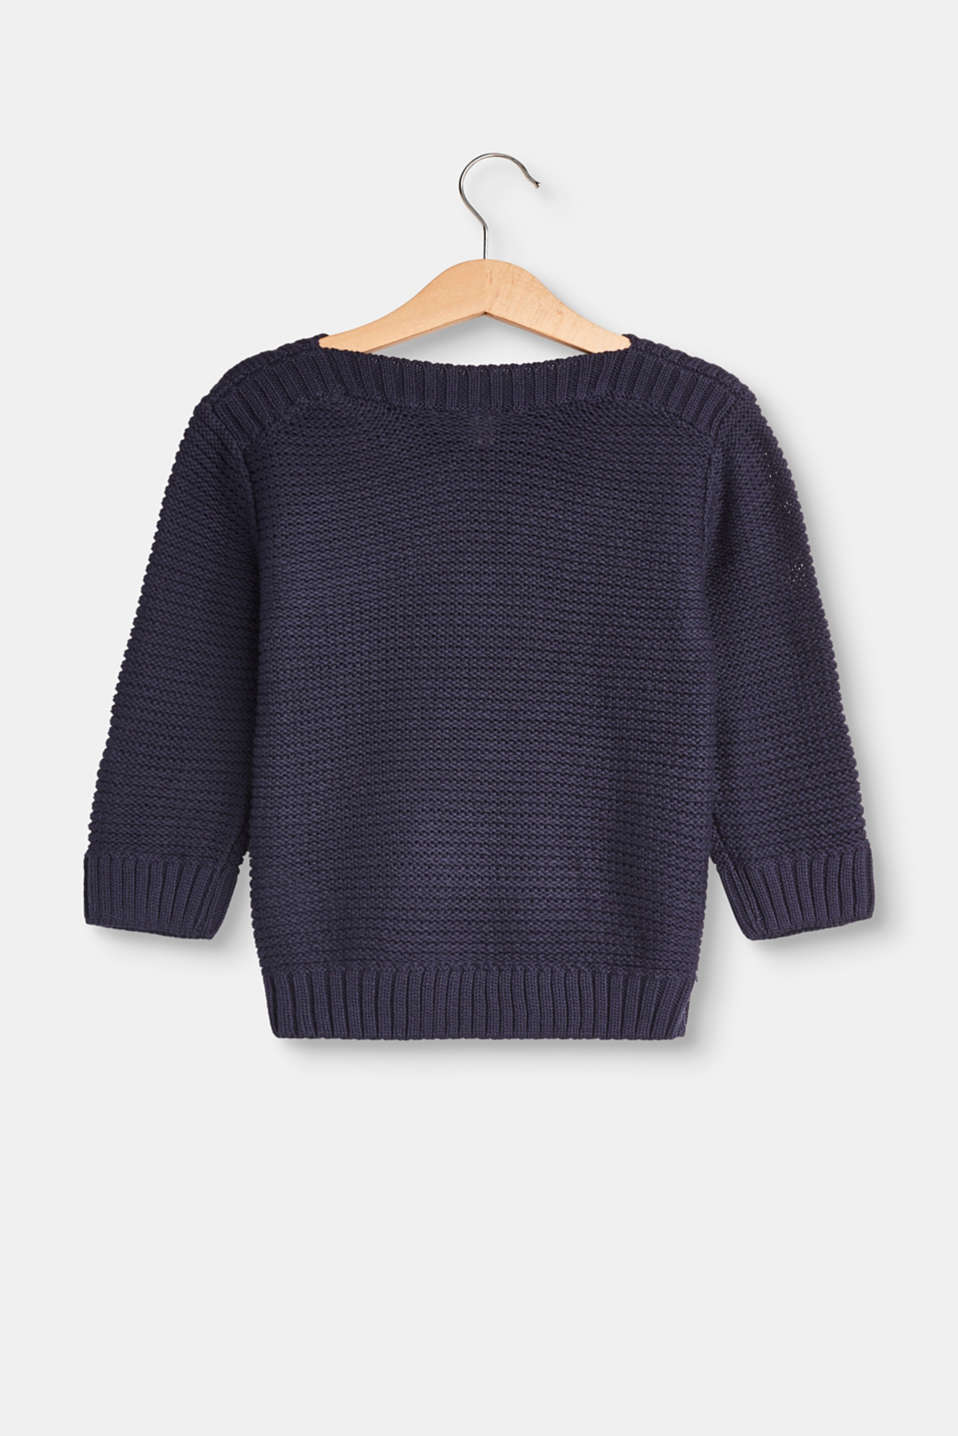 Textured jumper with a bateau-neckline